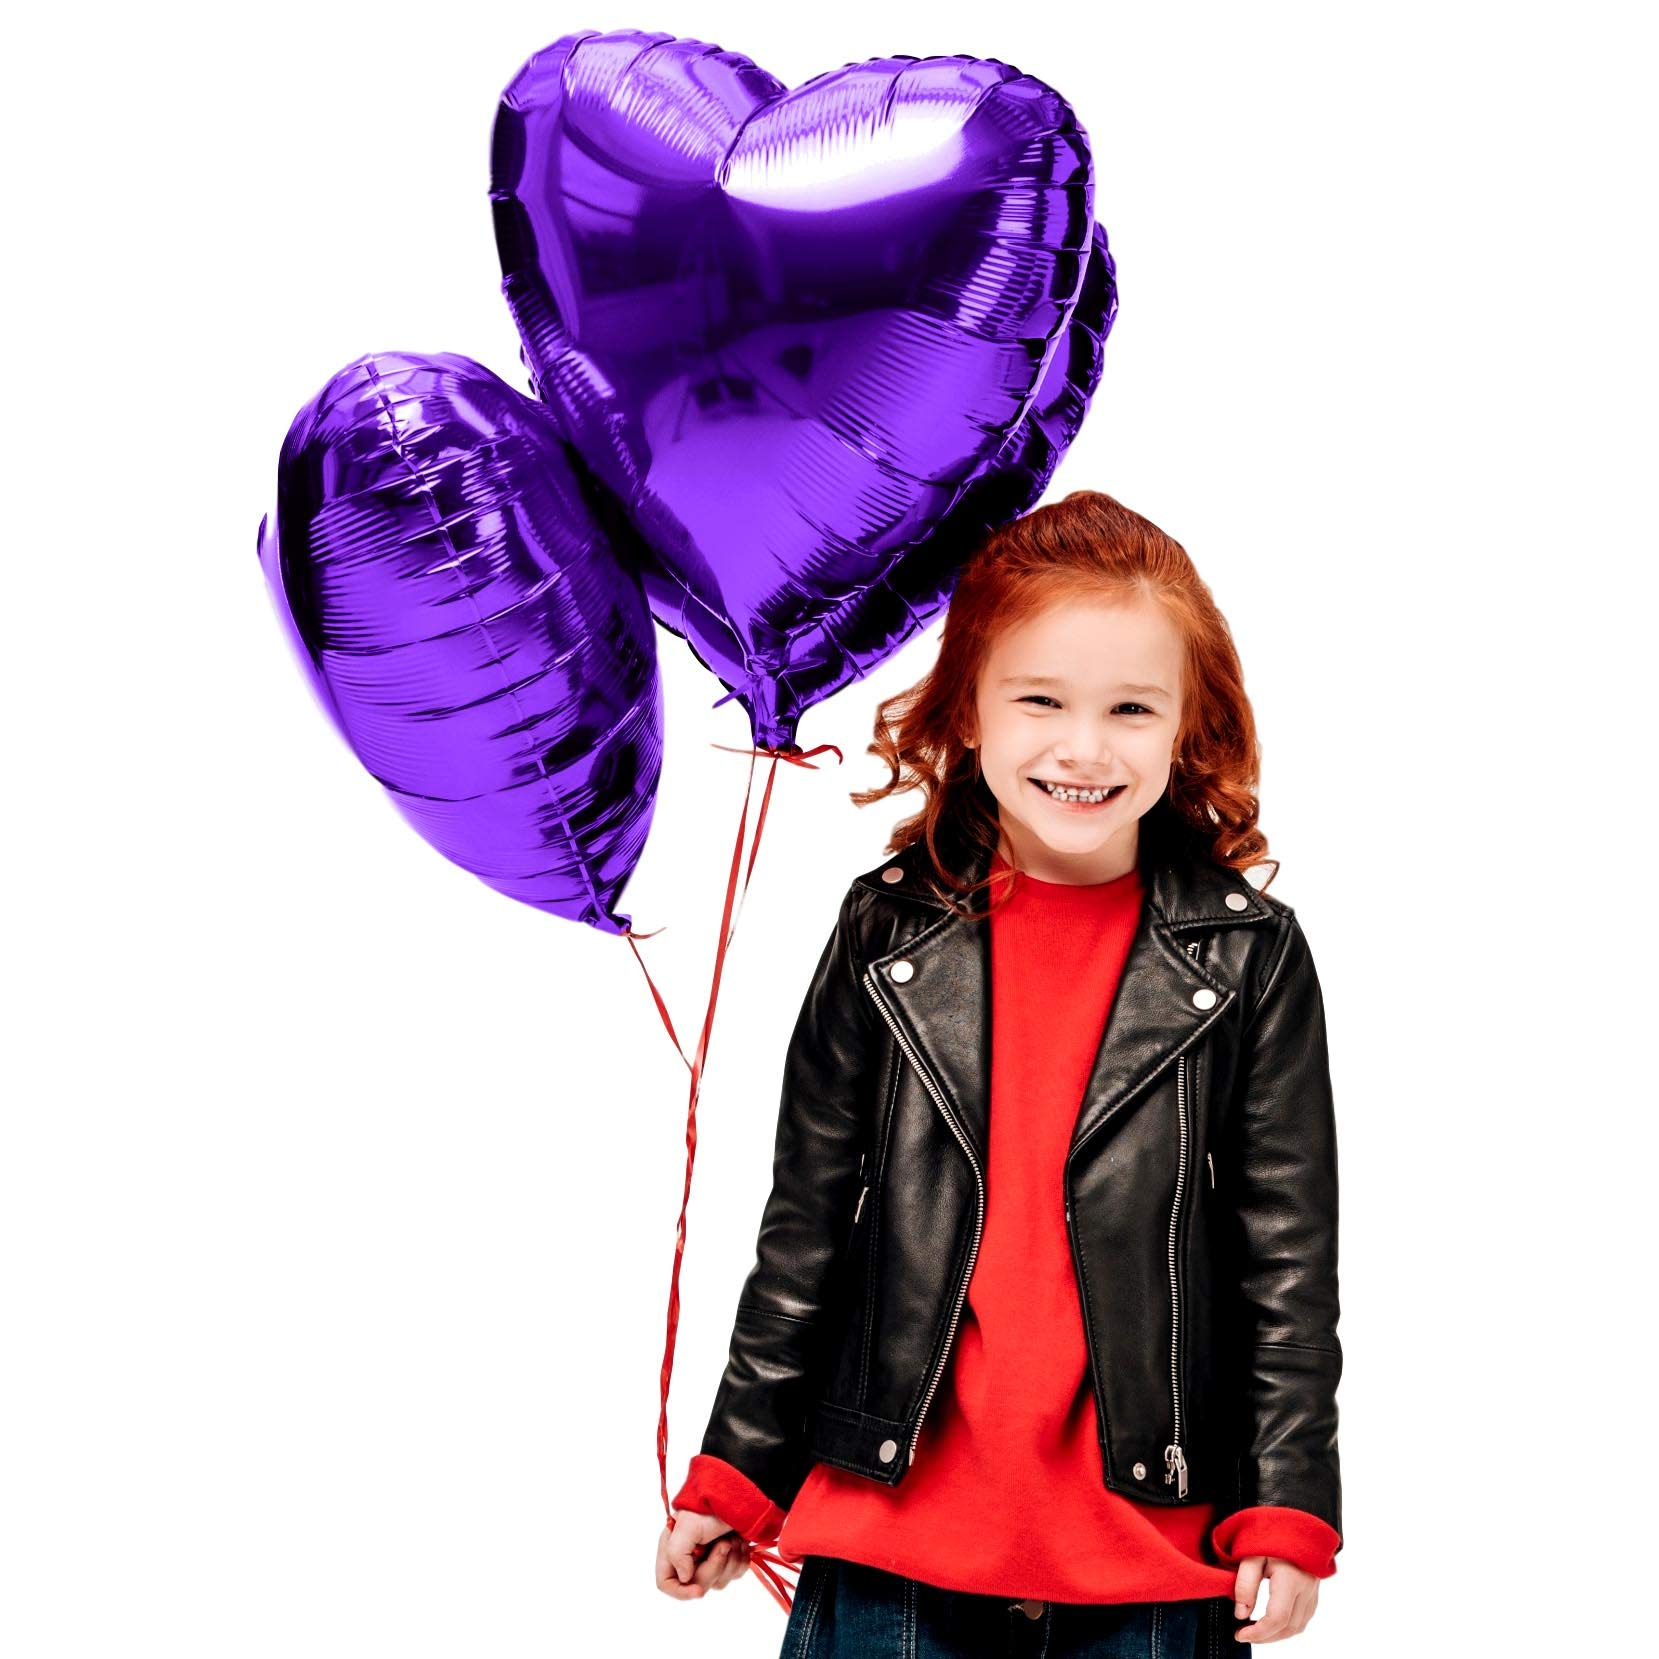 Treasures Gifted Mothers Day Heart Love Decorations in Violet Purple Foil Mylar Balloons for Birthday Bridal Shower Wedding Engagement Party Graduation Supplies (6 Pack)